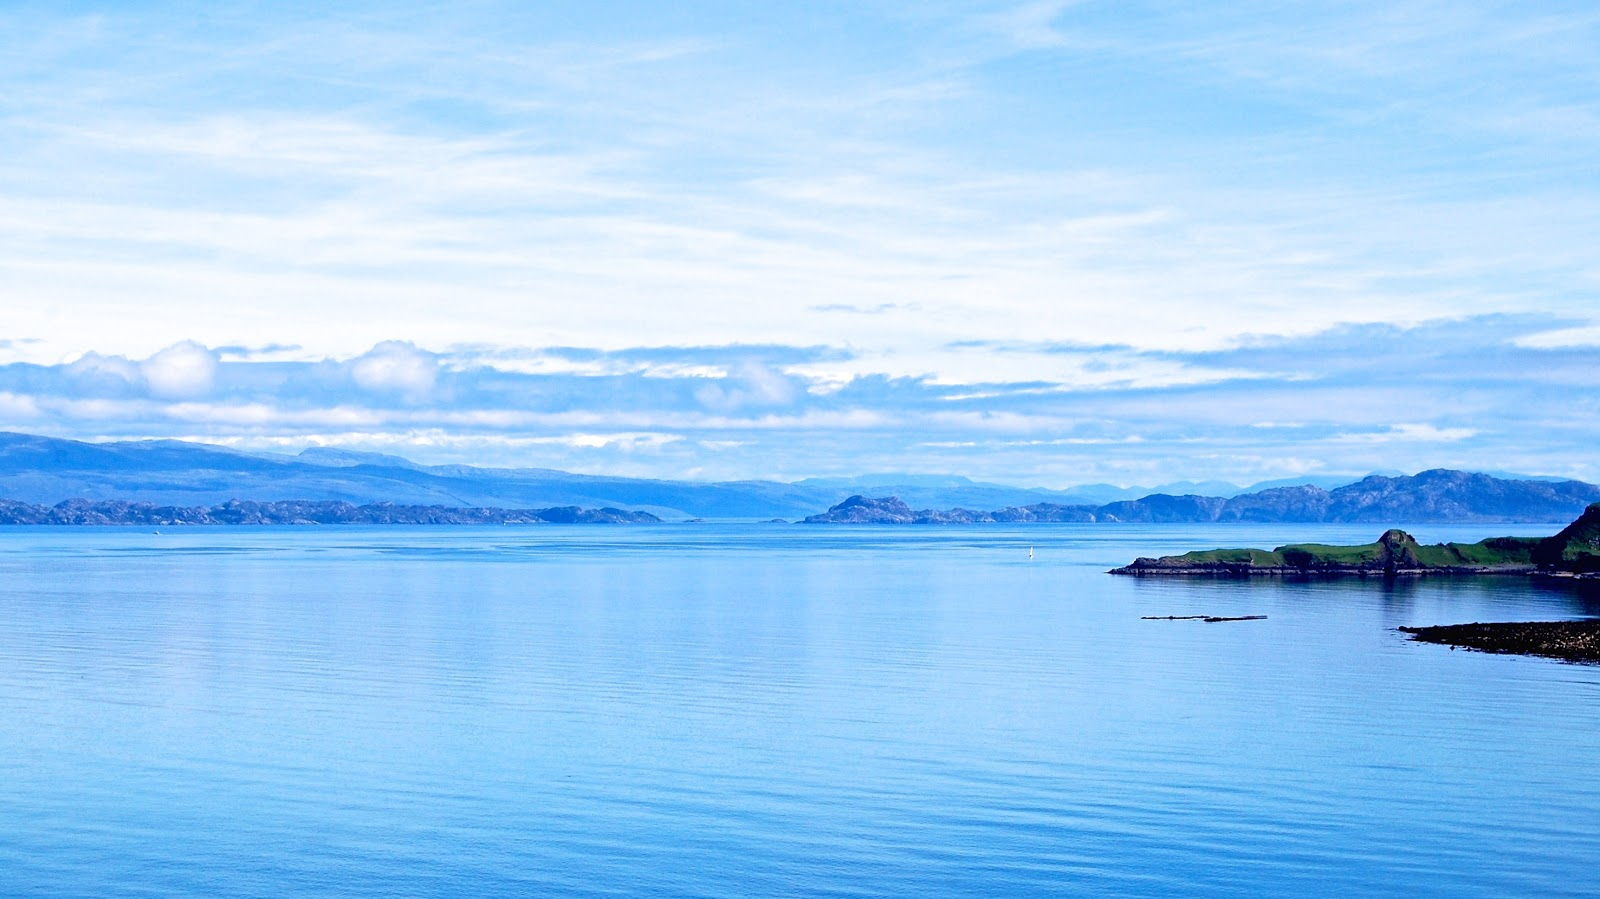 View from the Isle of Skye toward mainland Scotland